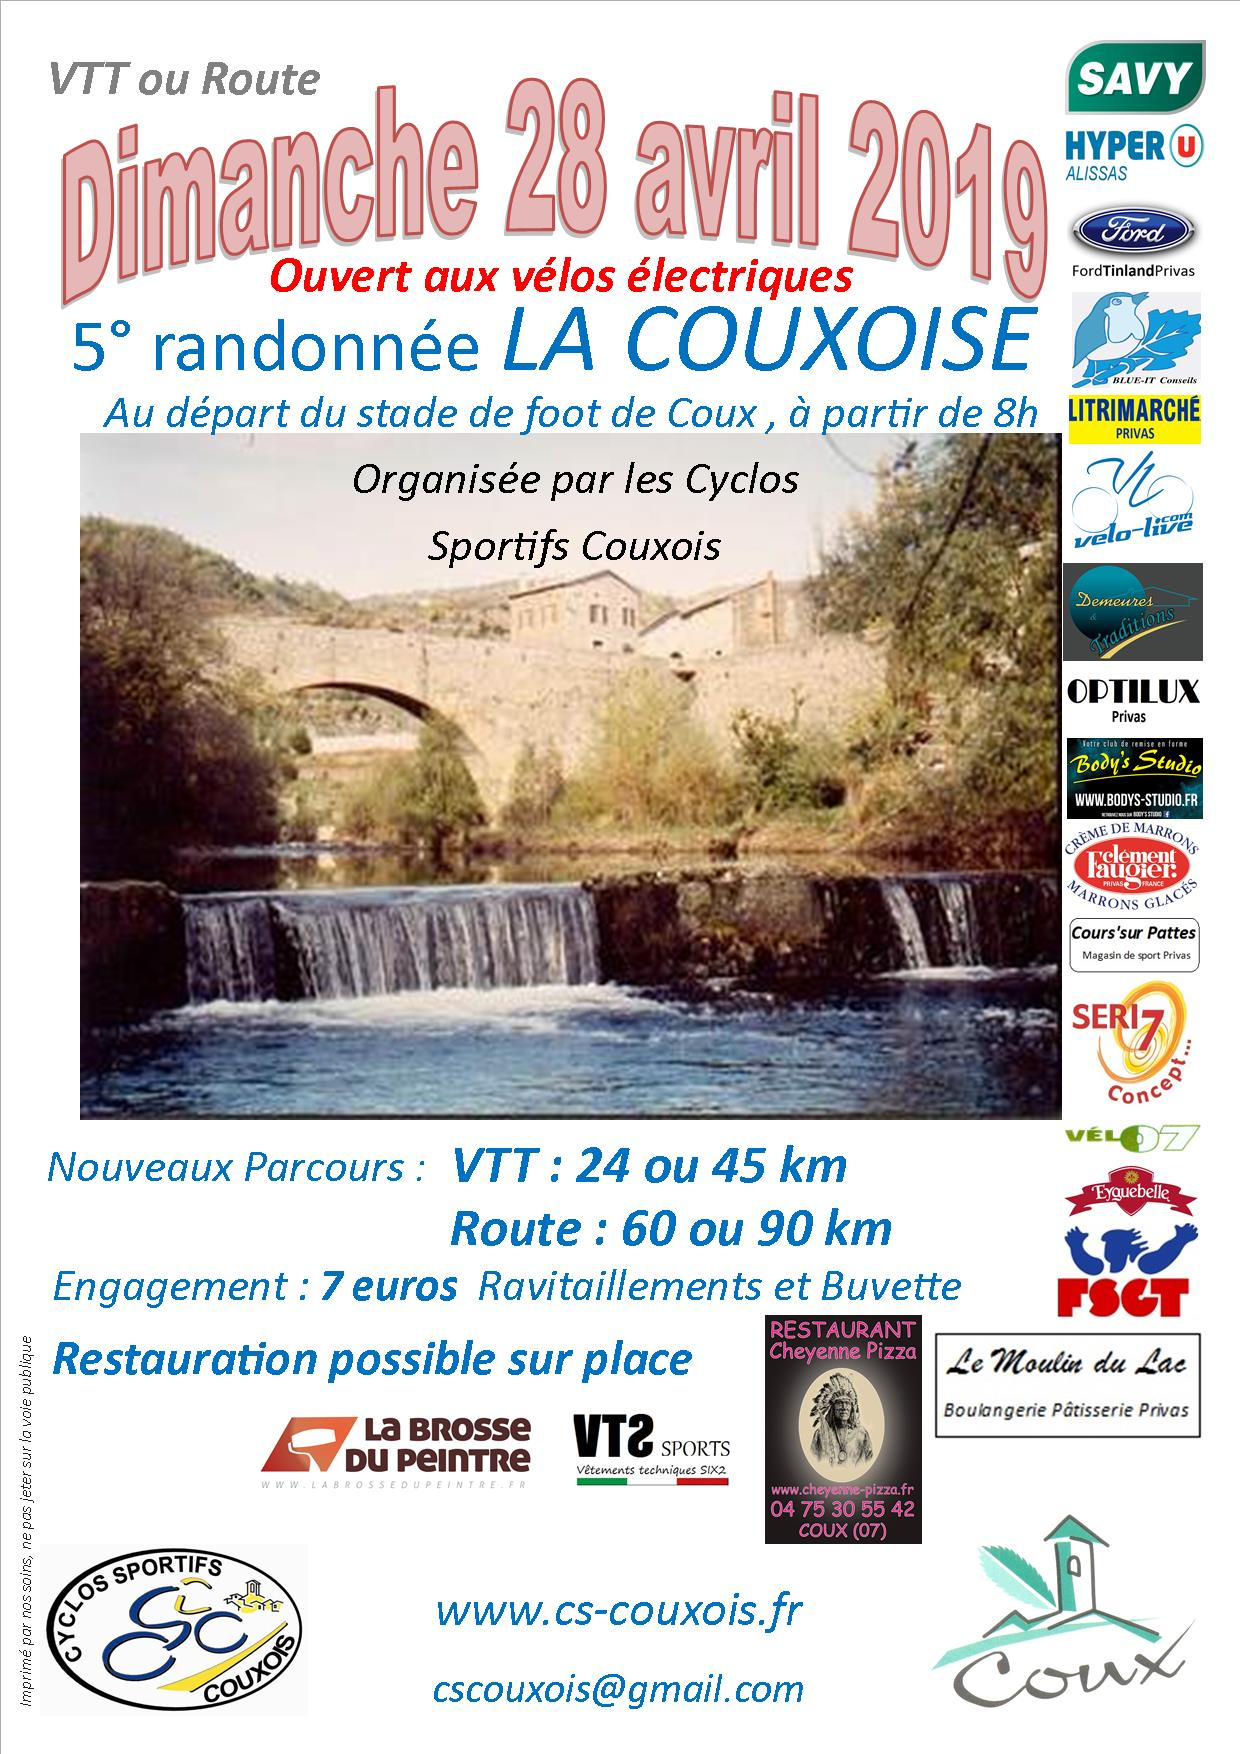 Events…Put it in your diary : La Couxoise Route & VTT  #5